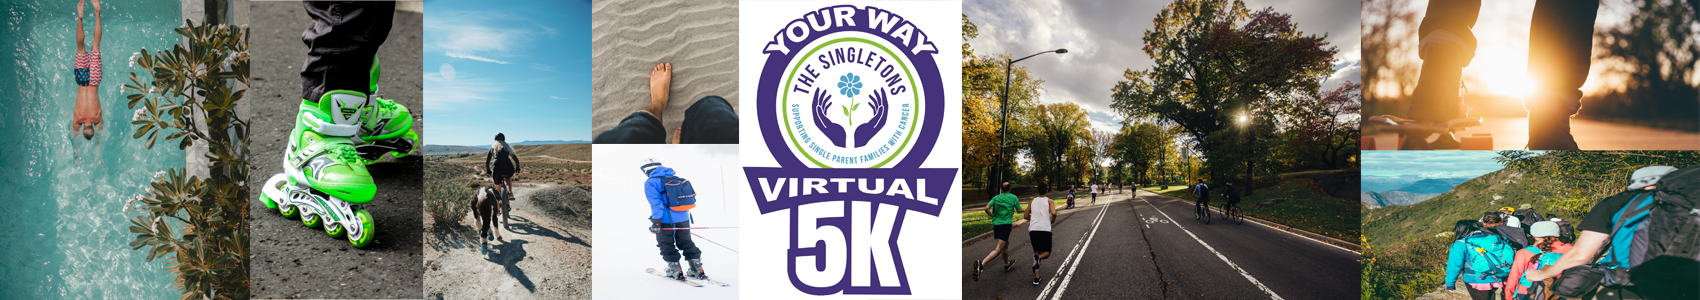 Your Way Virtual 5k